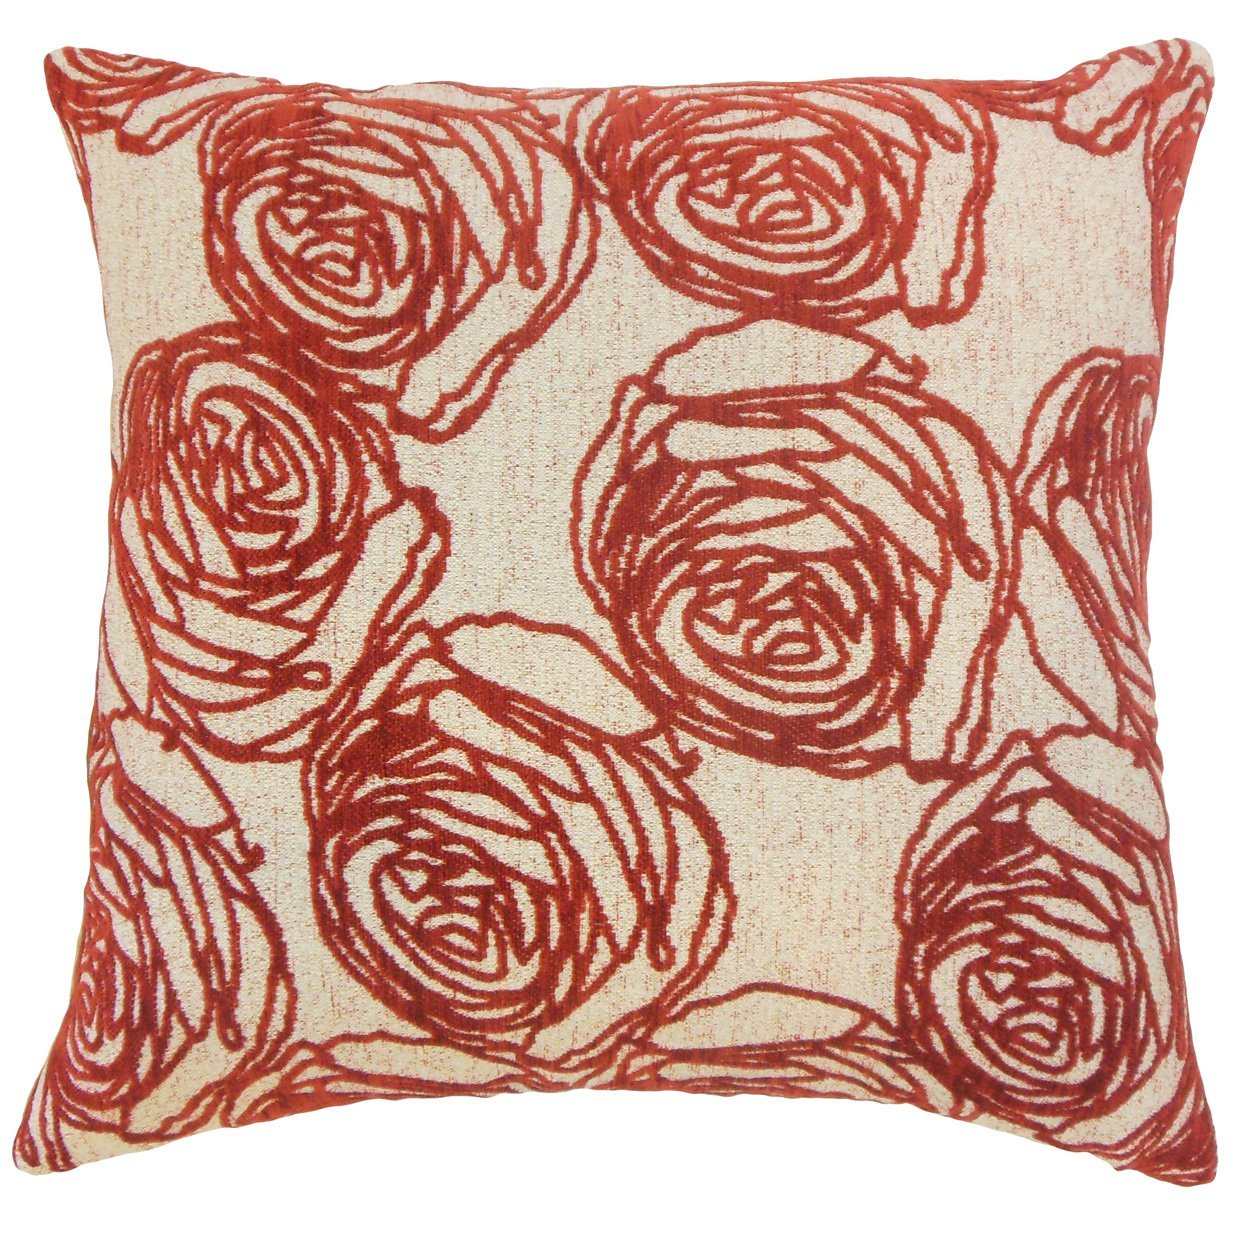 Red Synthetic Floral Contemporary Throw Pillow Cover